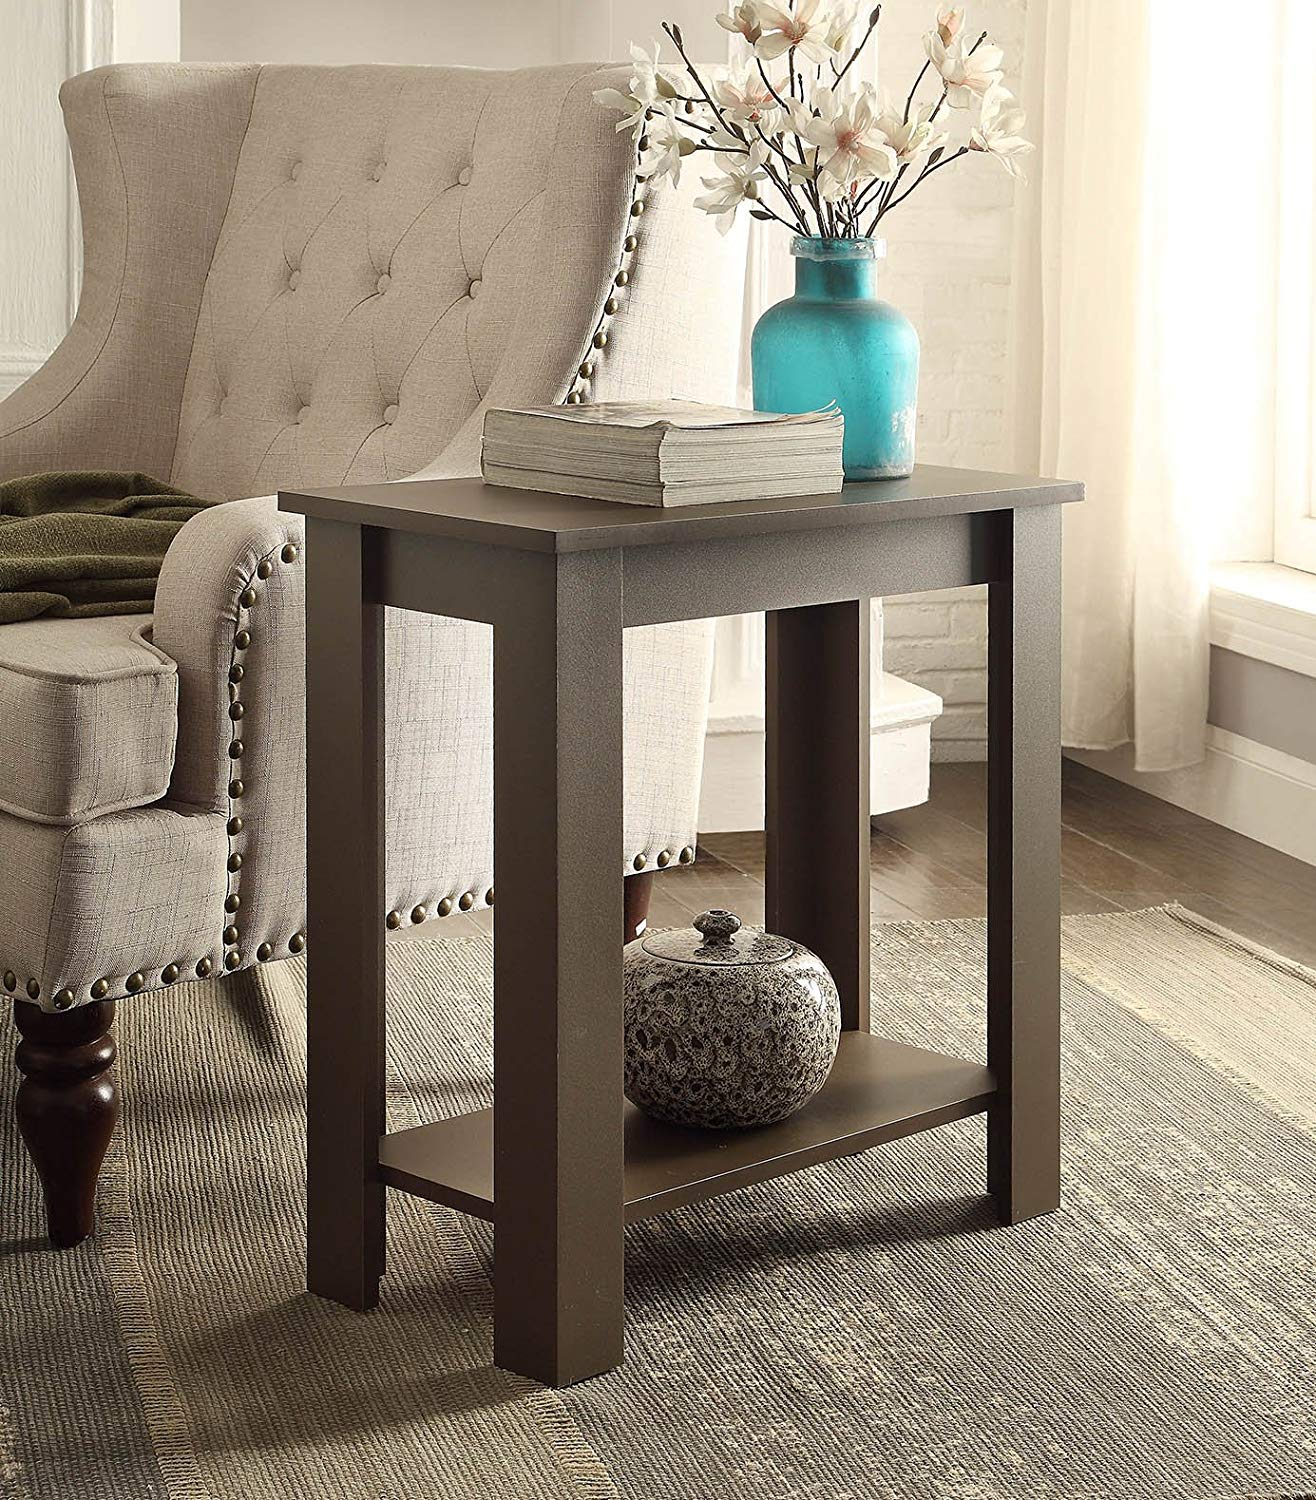 espresso finish tier chair side end table with shelf accent phone kitchen dining ashley furniture and half glass timber outdoor setting bunnings diy barndoor aluminum patio black